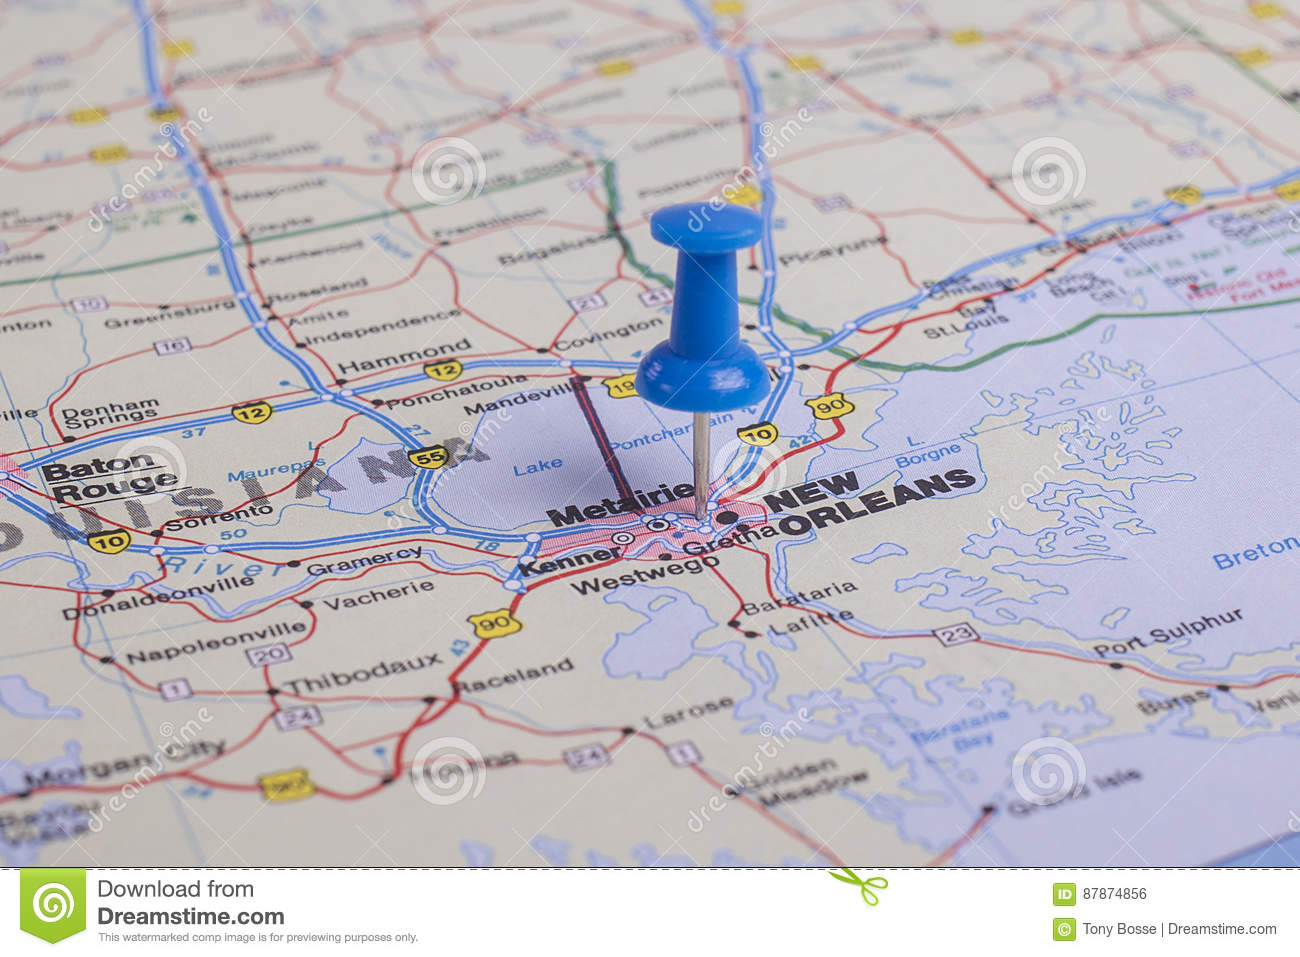 New Orleans La Stock Photo Image Of Field Accurate 87874856